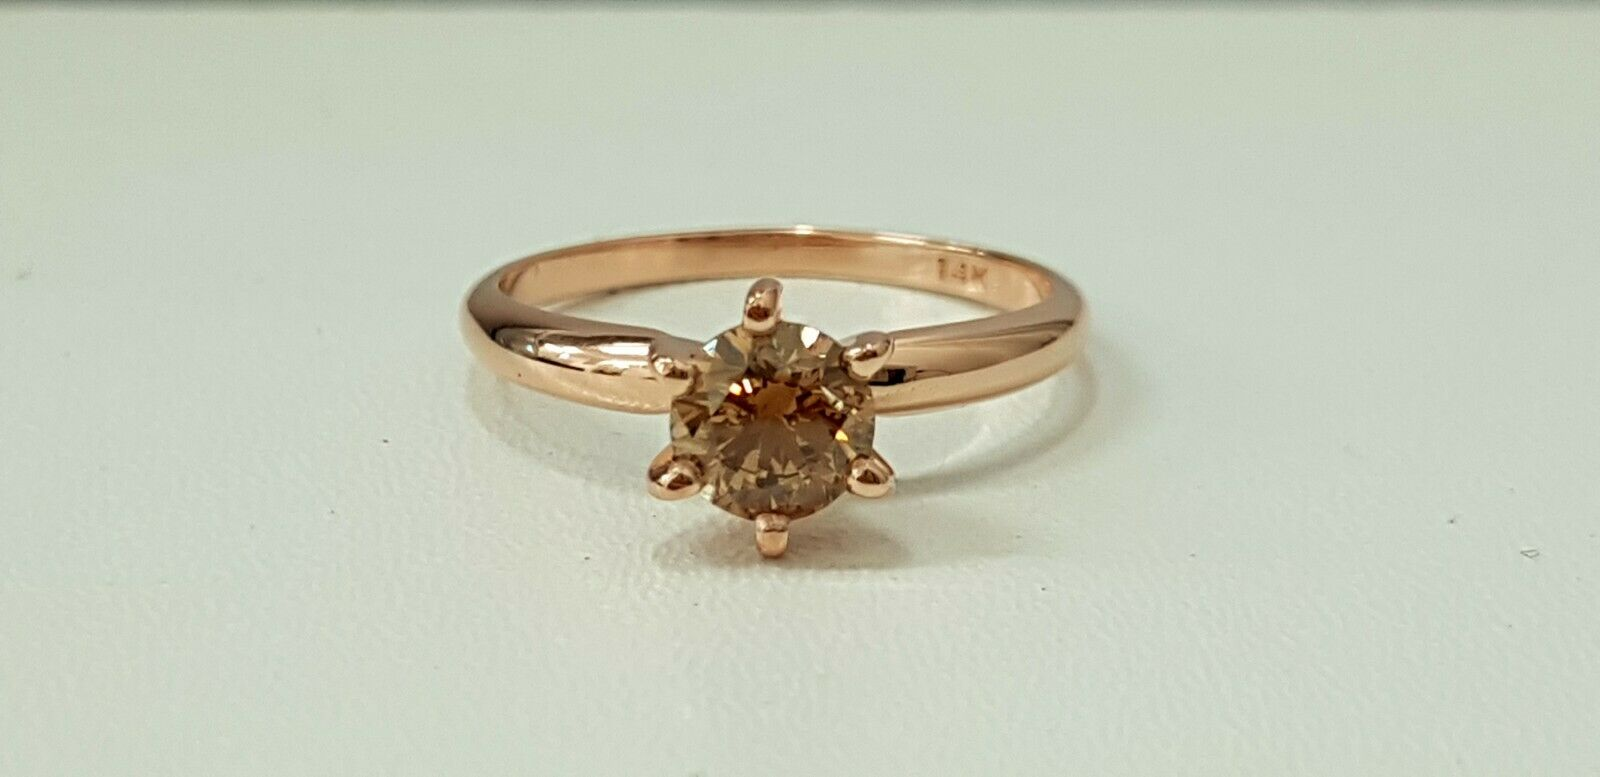 0.73ct ROUND CUT solitaire diamond engagement Ring 14K pink gold FANCY COLOR VS2